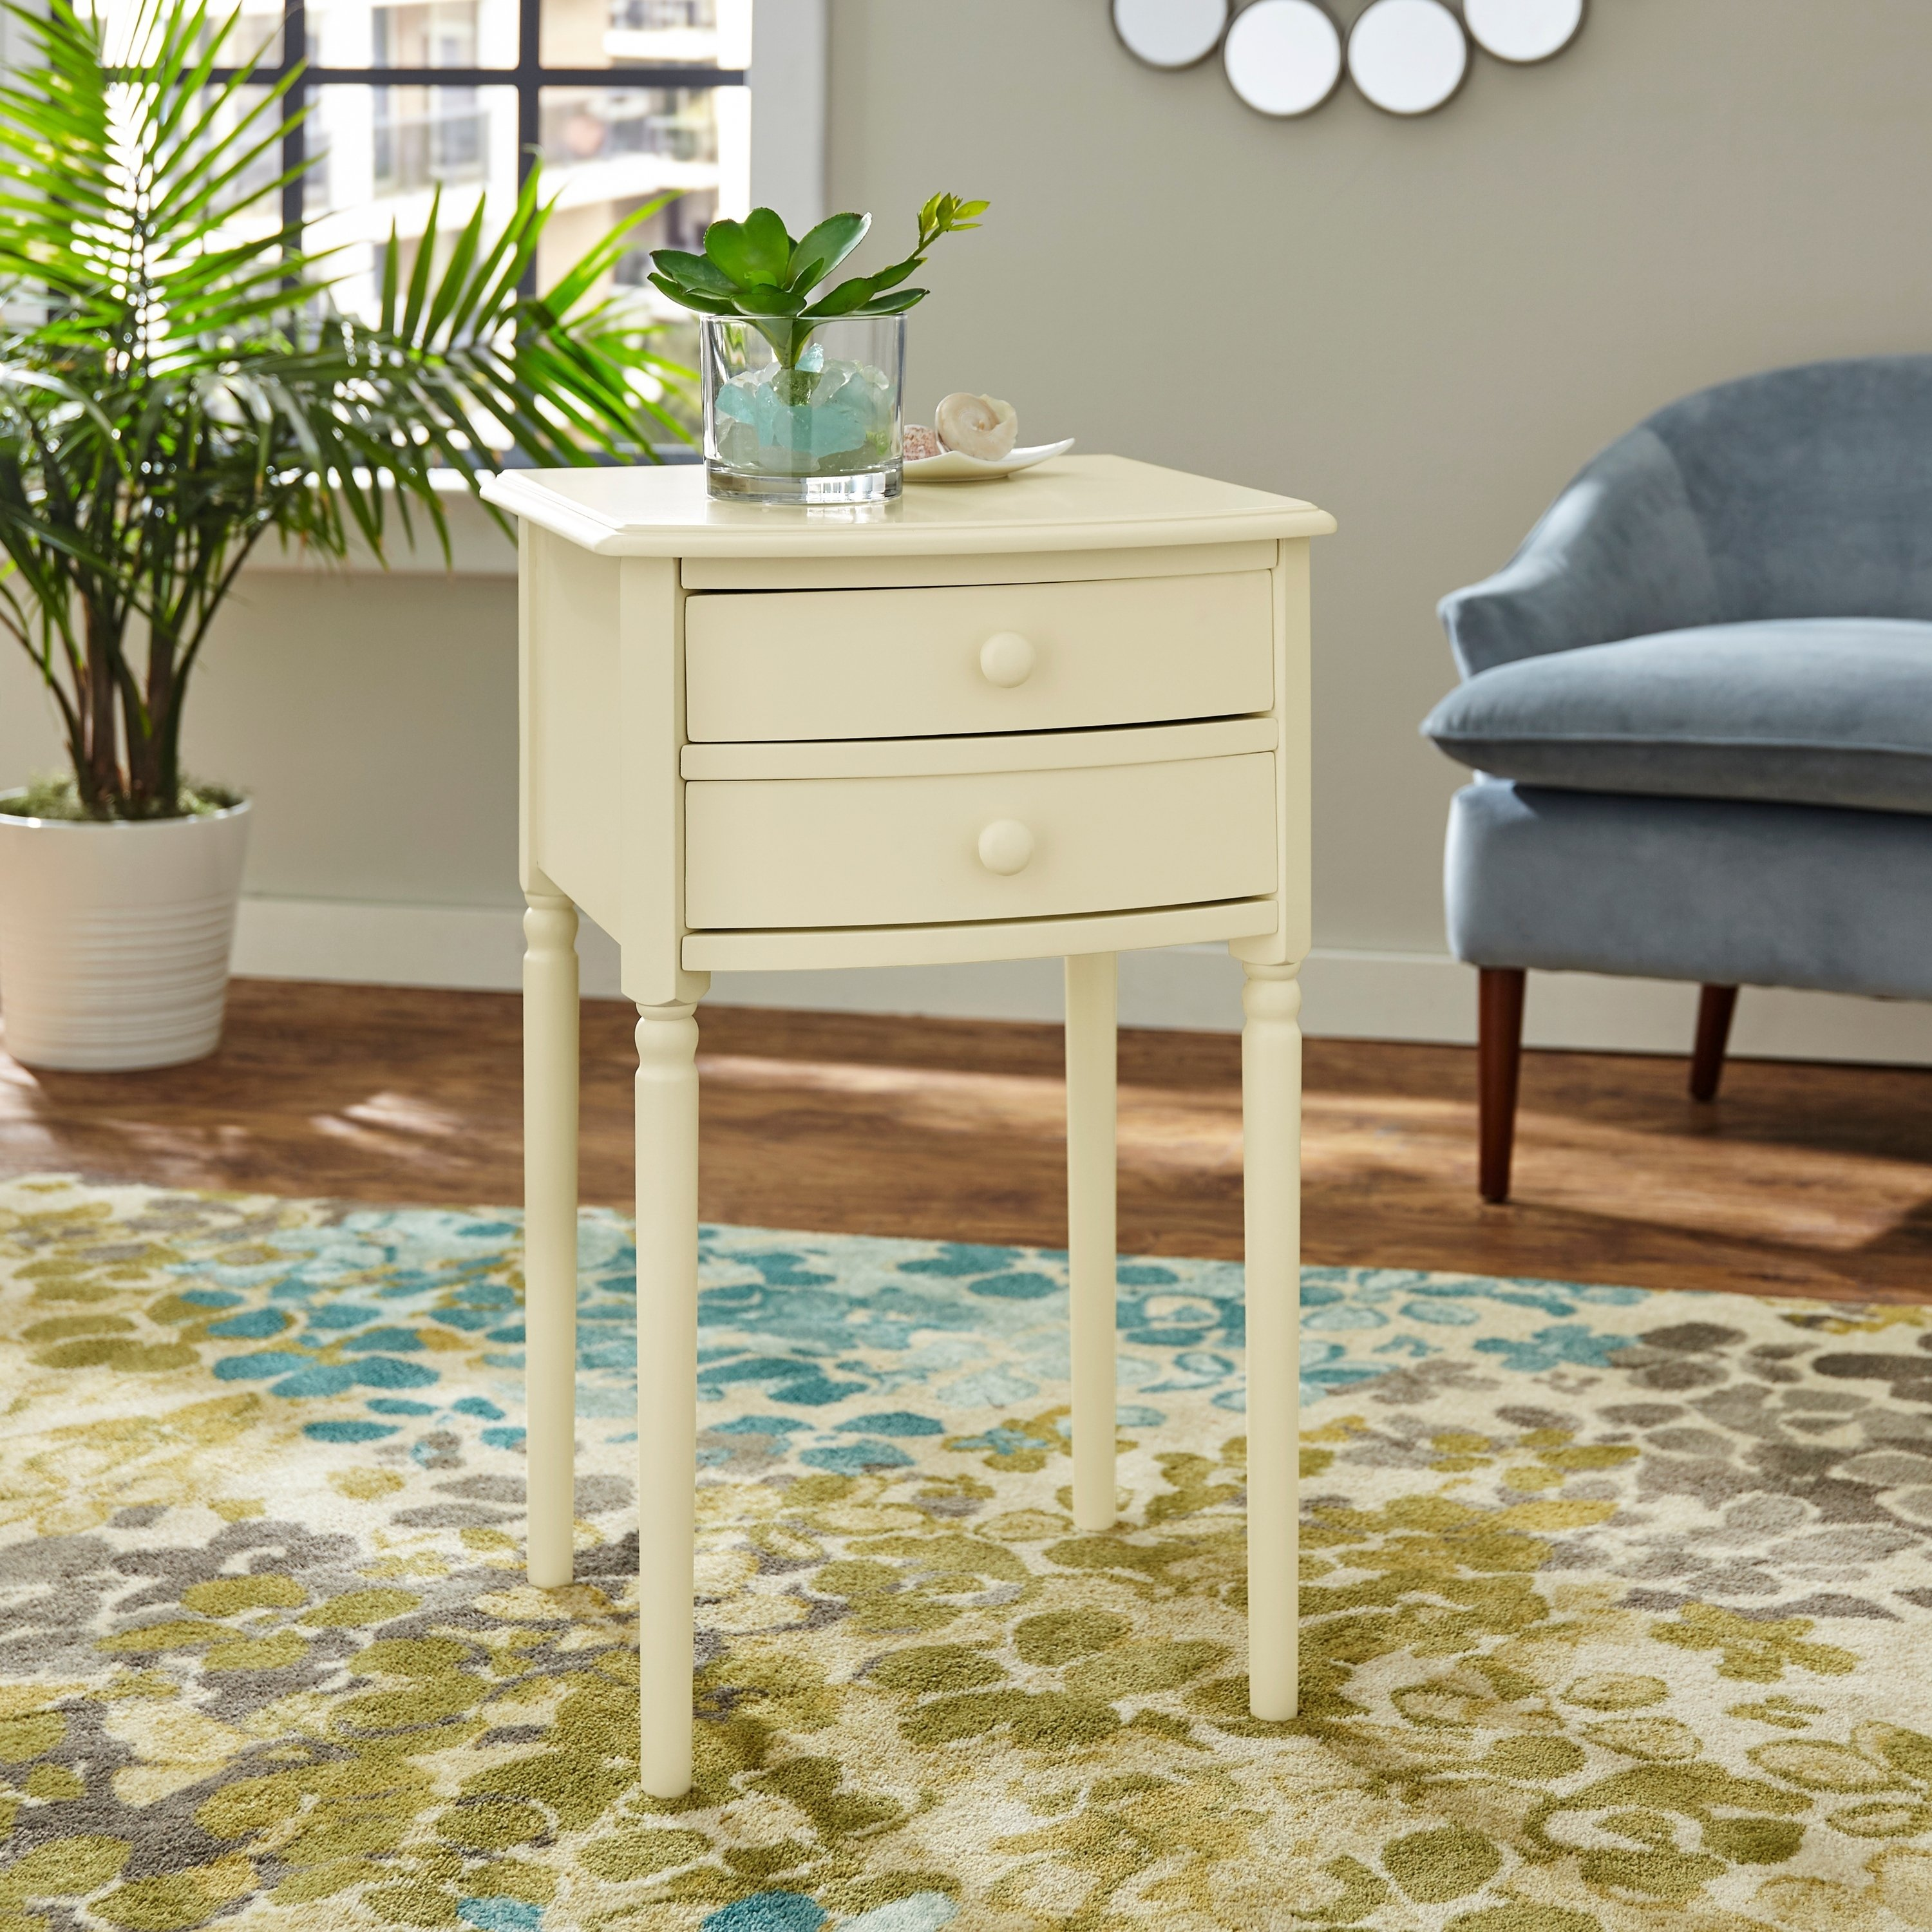 harper blvd davelon tall farmhouse accent table with storage free shipping today pottery barn high top white plastic patio side wood cube coffee small sofa end tables quatrefoil